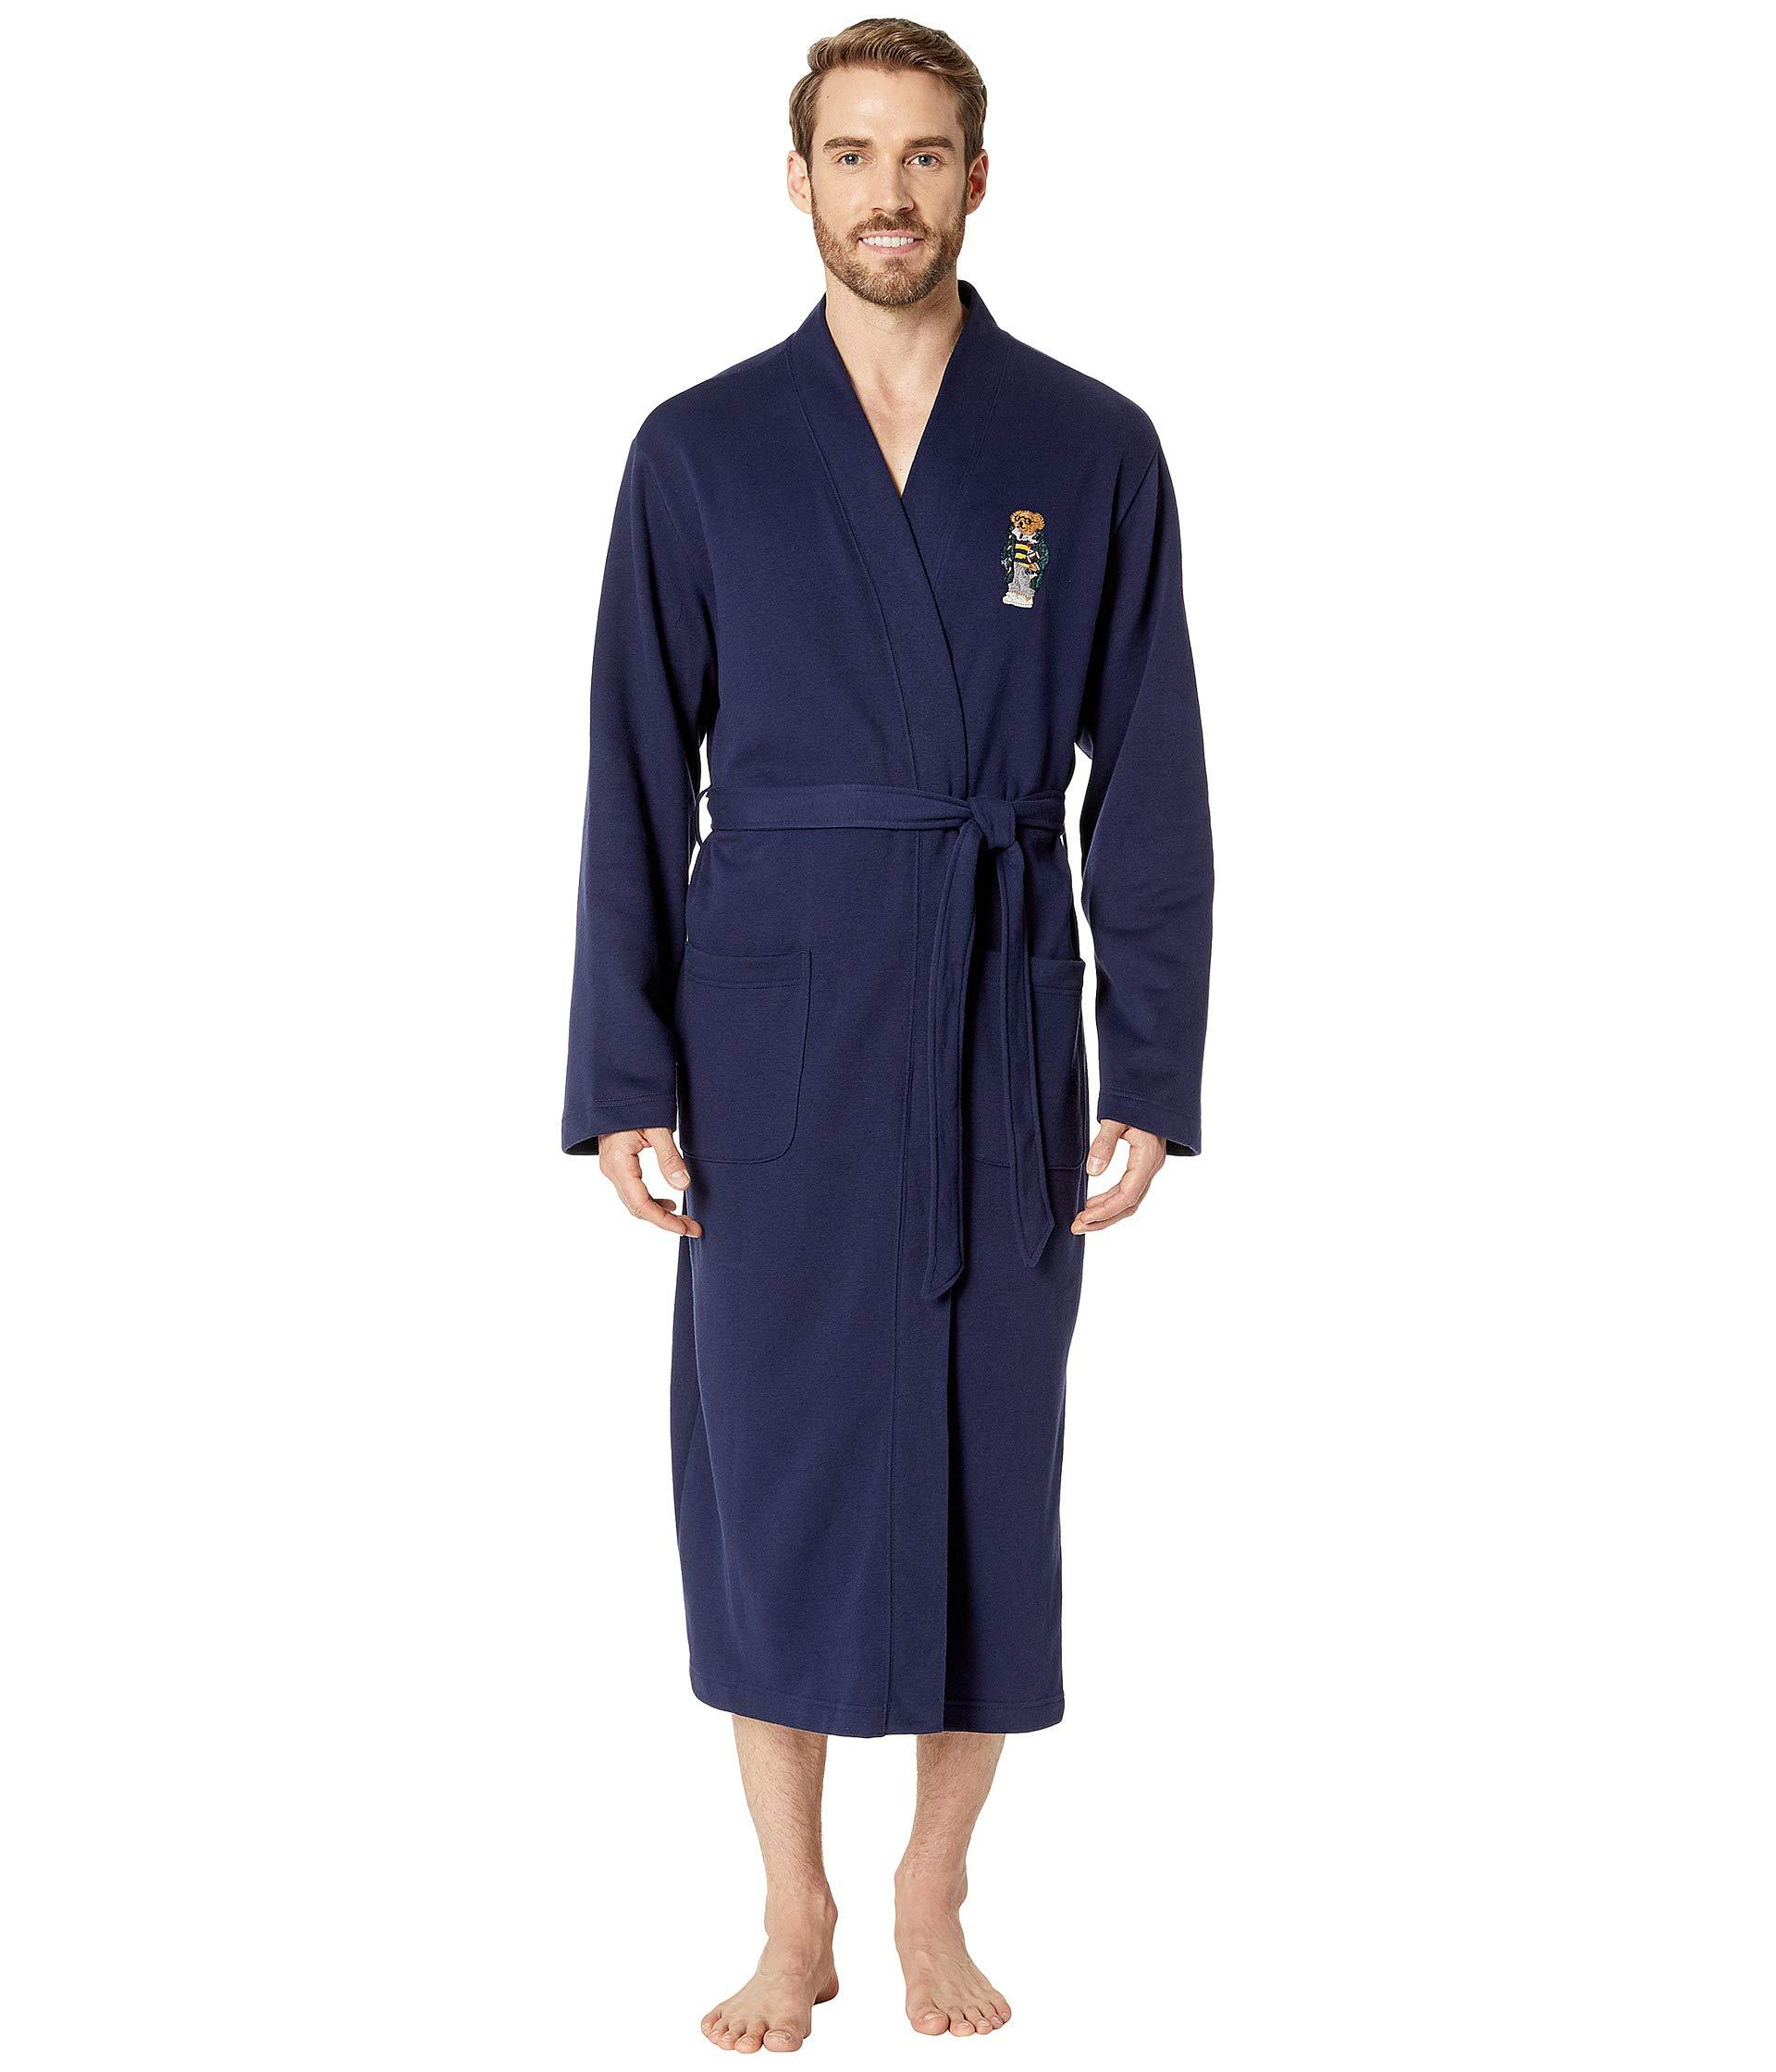 c21e0685c4 Lyst - Polo Ralph Lauren Long Sleeve Fleece Kimono Robe (cruise Navy ...